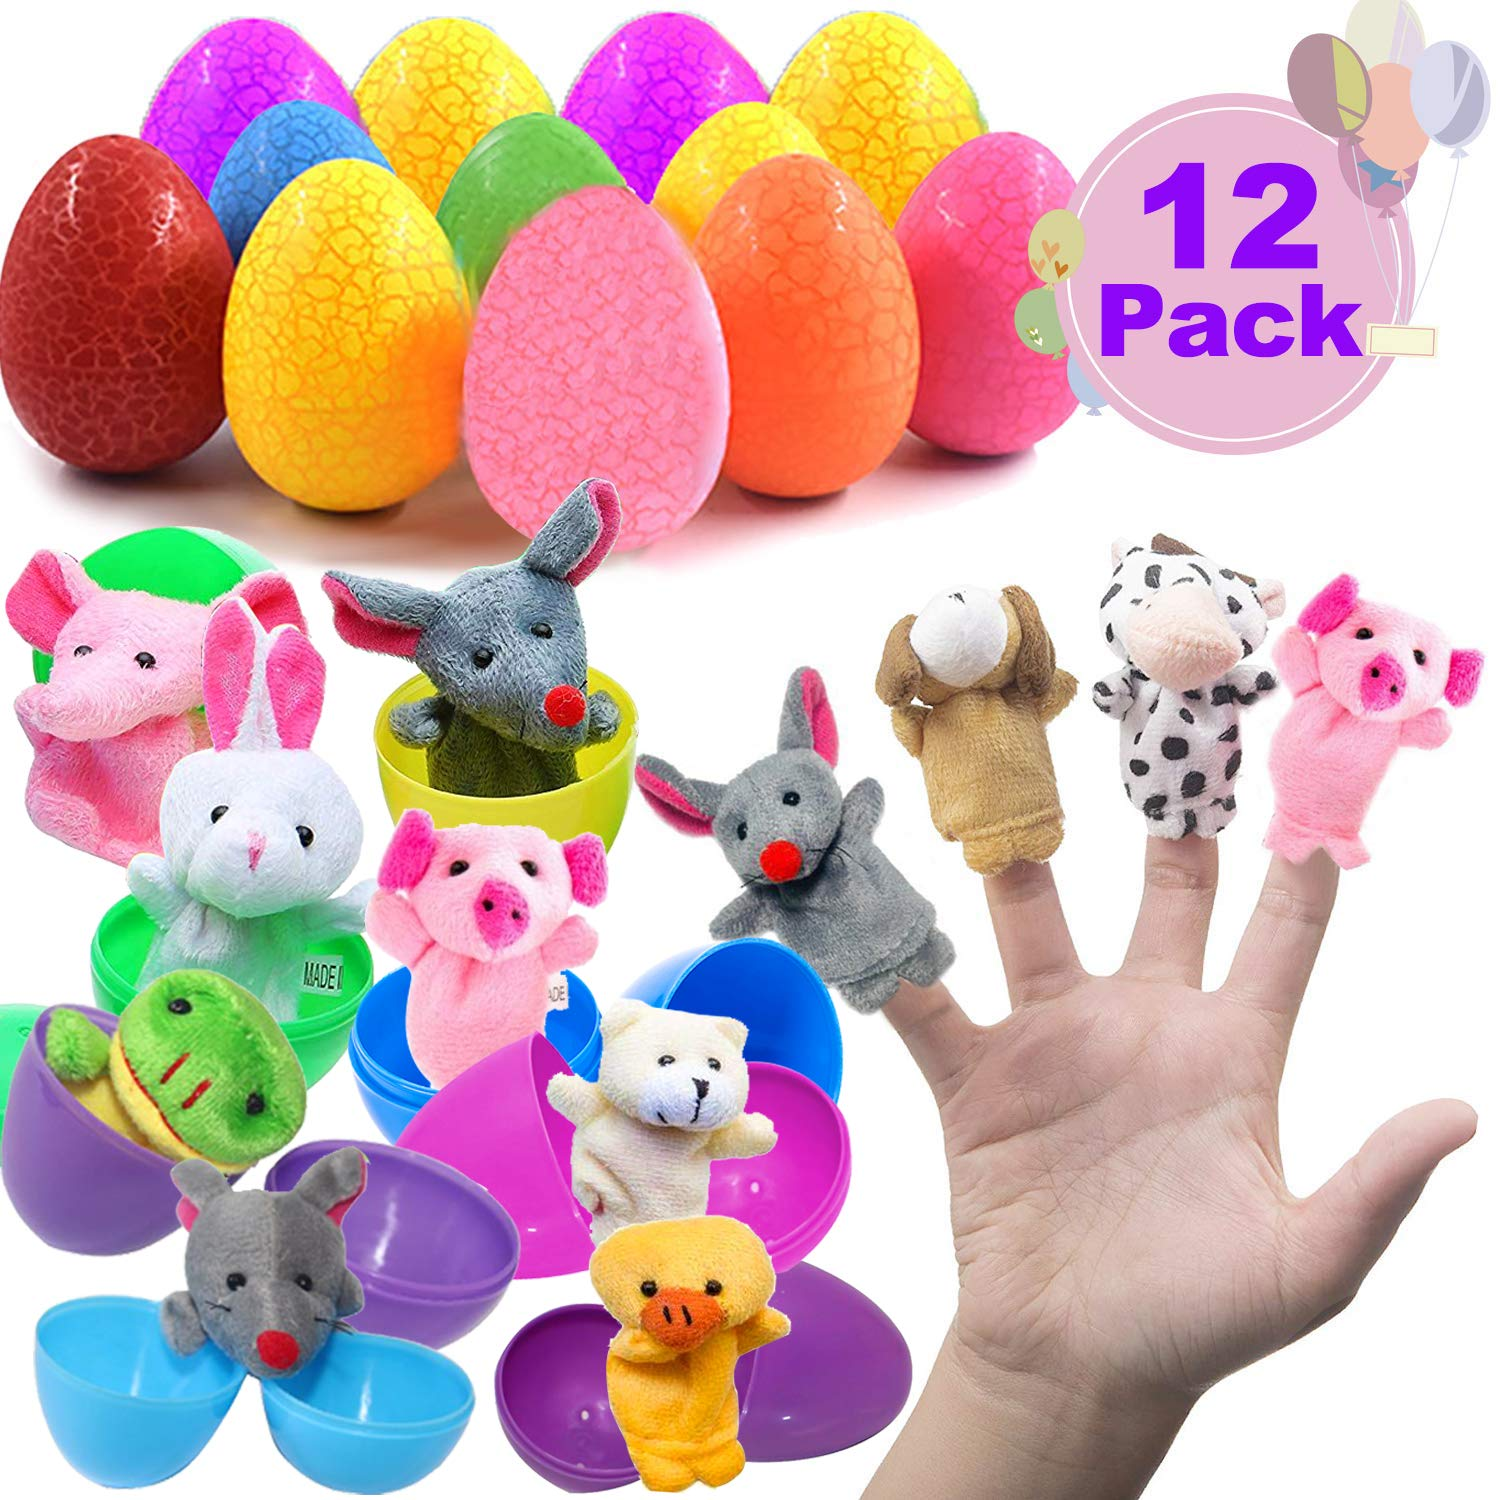 Easter Party Favors Easter Eggs Plush Animal Finger Puppets for Toddlers Easter Basket Stuffers Easter Surprise Eggs Filled with Mini Cartoon Toys for Kids Story Telling Birthday Surprise Gift 12Pcs Jupitaz